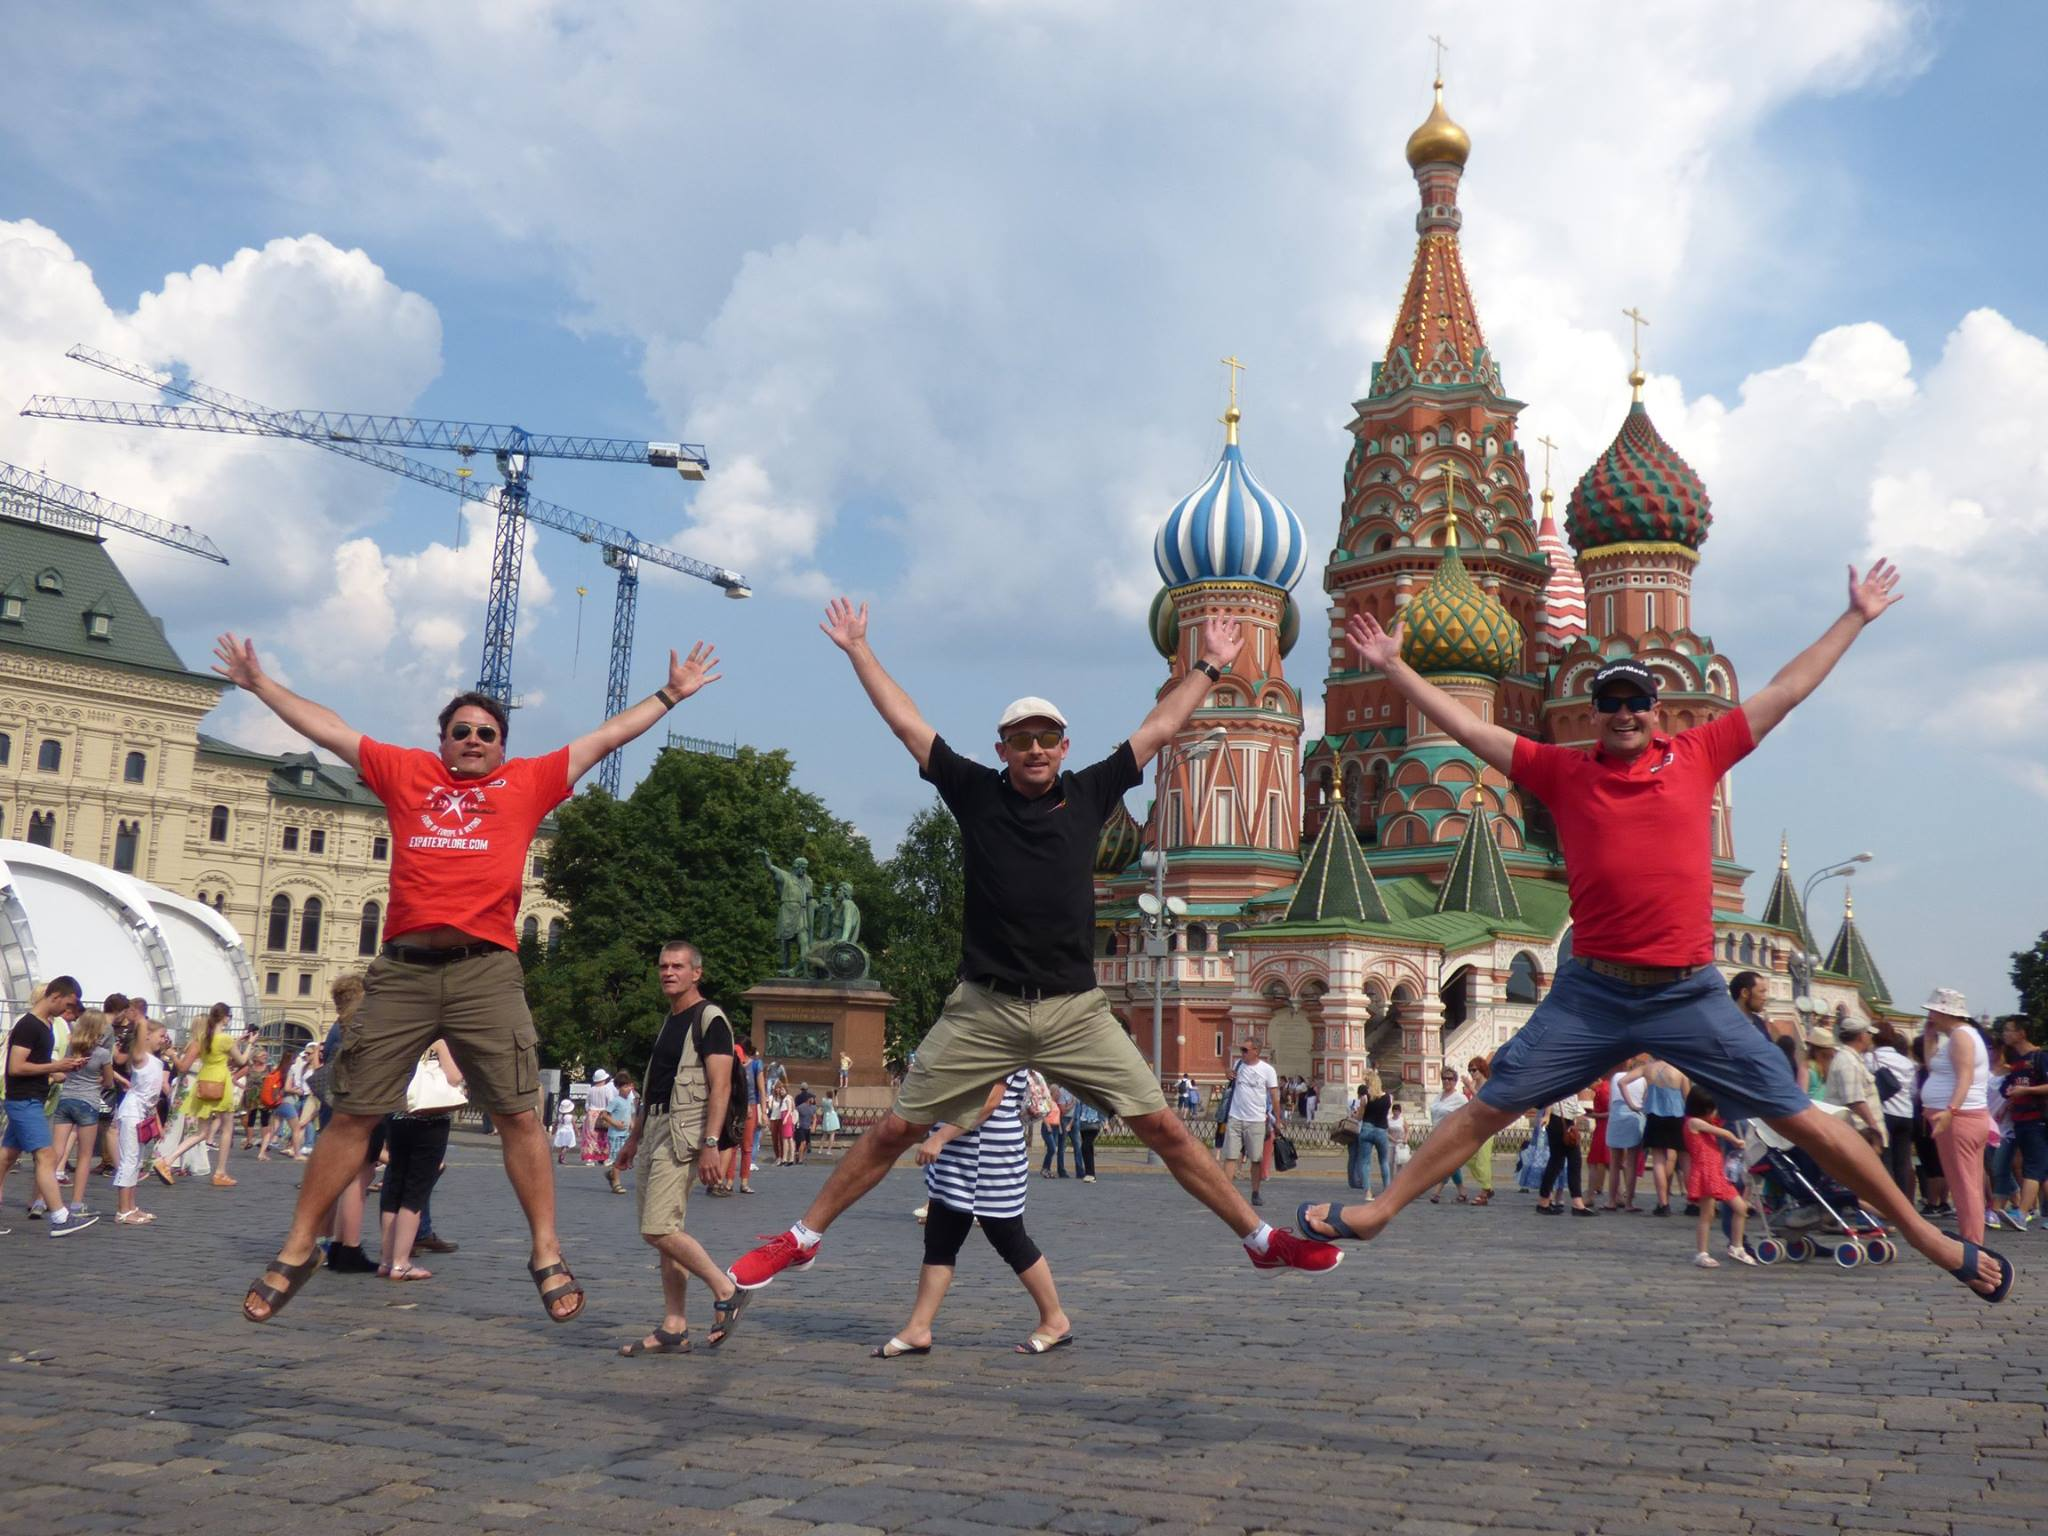 Carl and Jakes are the original X-jumpers! Here they are on a recent tour in Moscow, Russia.